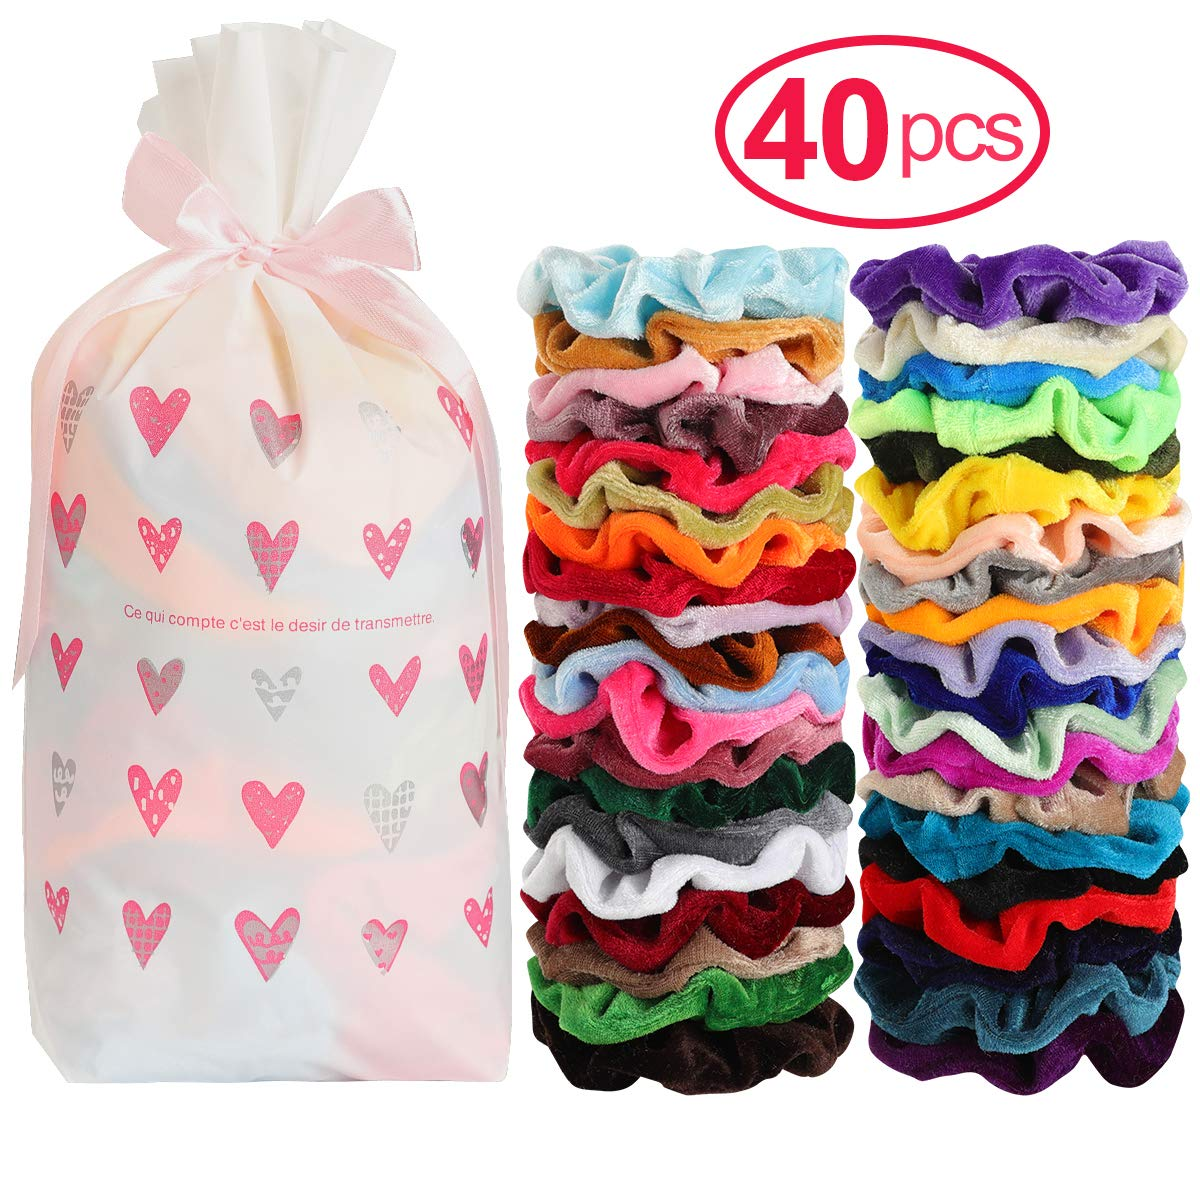 Mandydov 40pcs Hair Scrunchies Velvet Elastic Hair Bands Scrunchy Hair Ties Ropes 40 Pack Scrunchies for Women or Girls Hair Accessories - 40 Assorted Colors Scrunchies by Mandydov (Image #2)